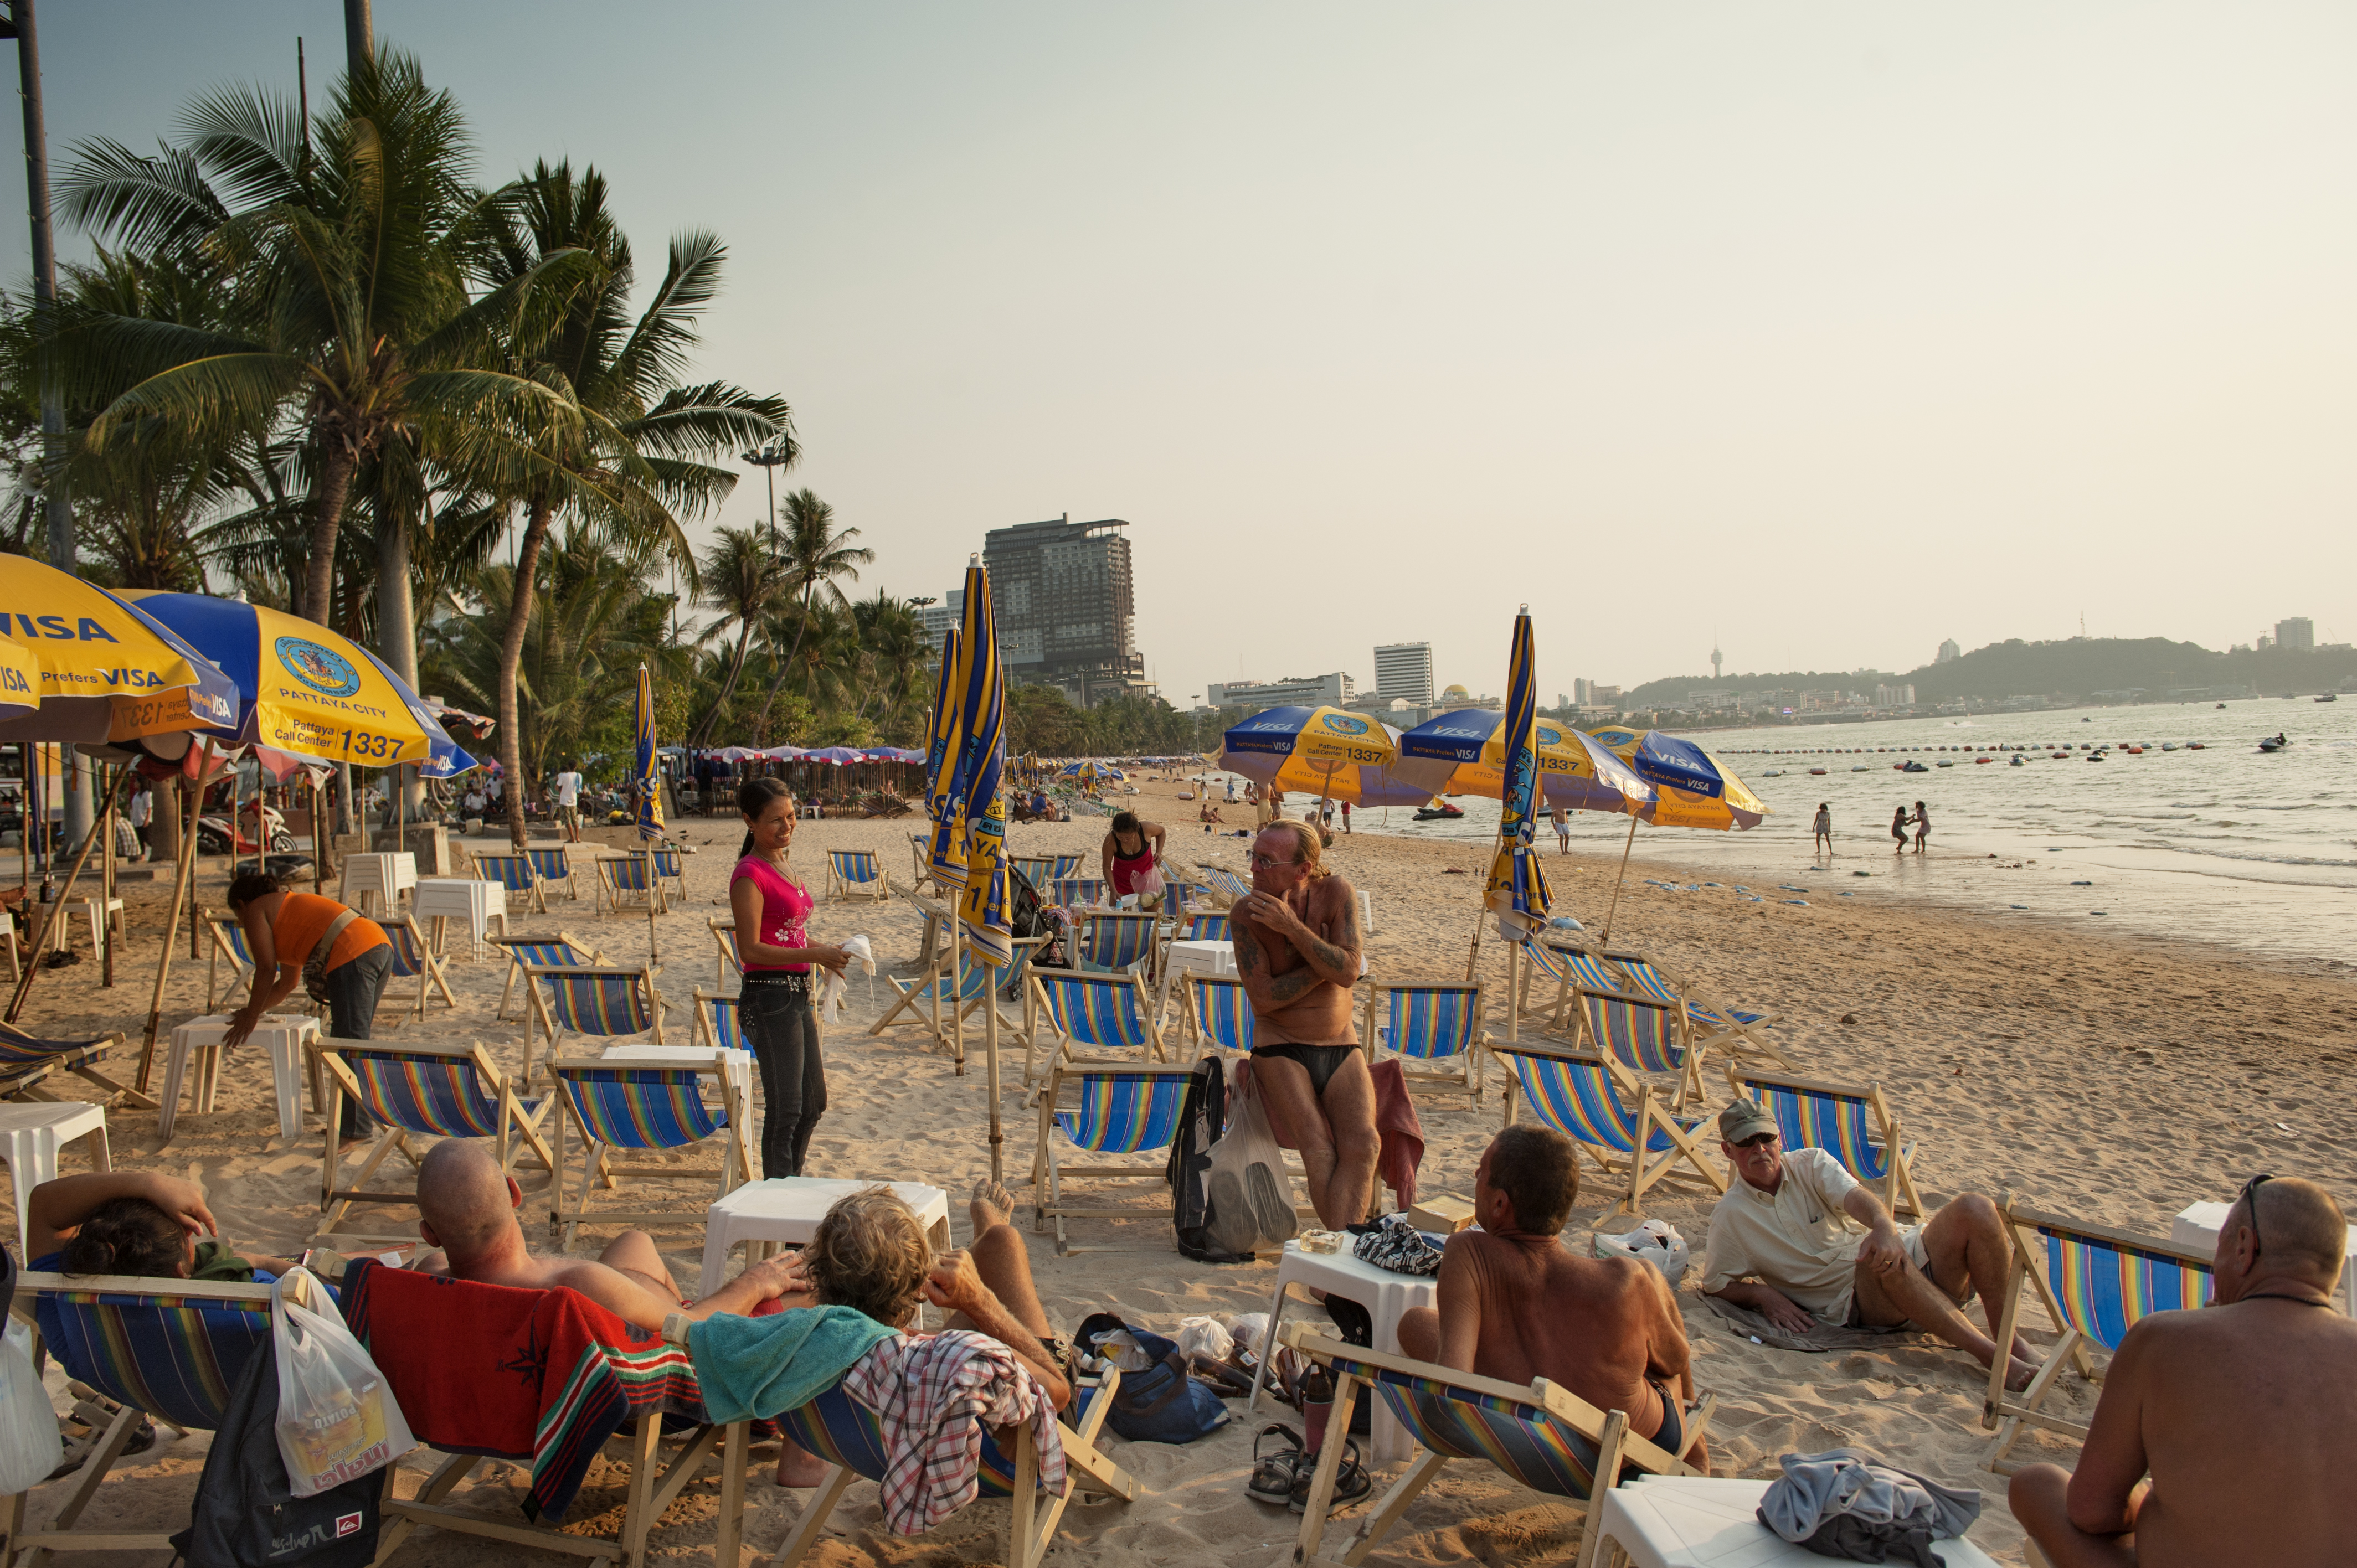 Tourists enjoy the beach at Pattaya in this file photo from 2013. The city remains a popular destination, drawing throngs of travelers throughout the year